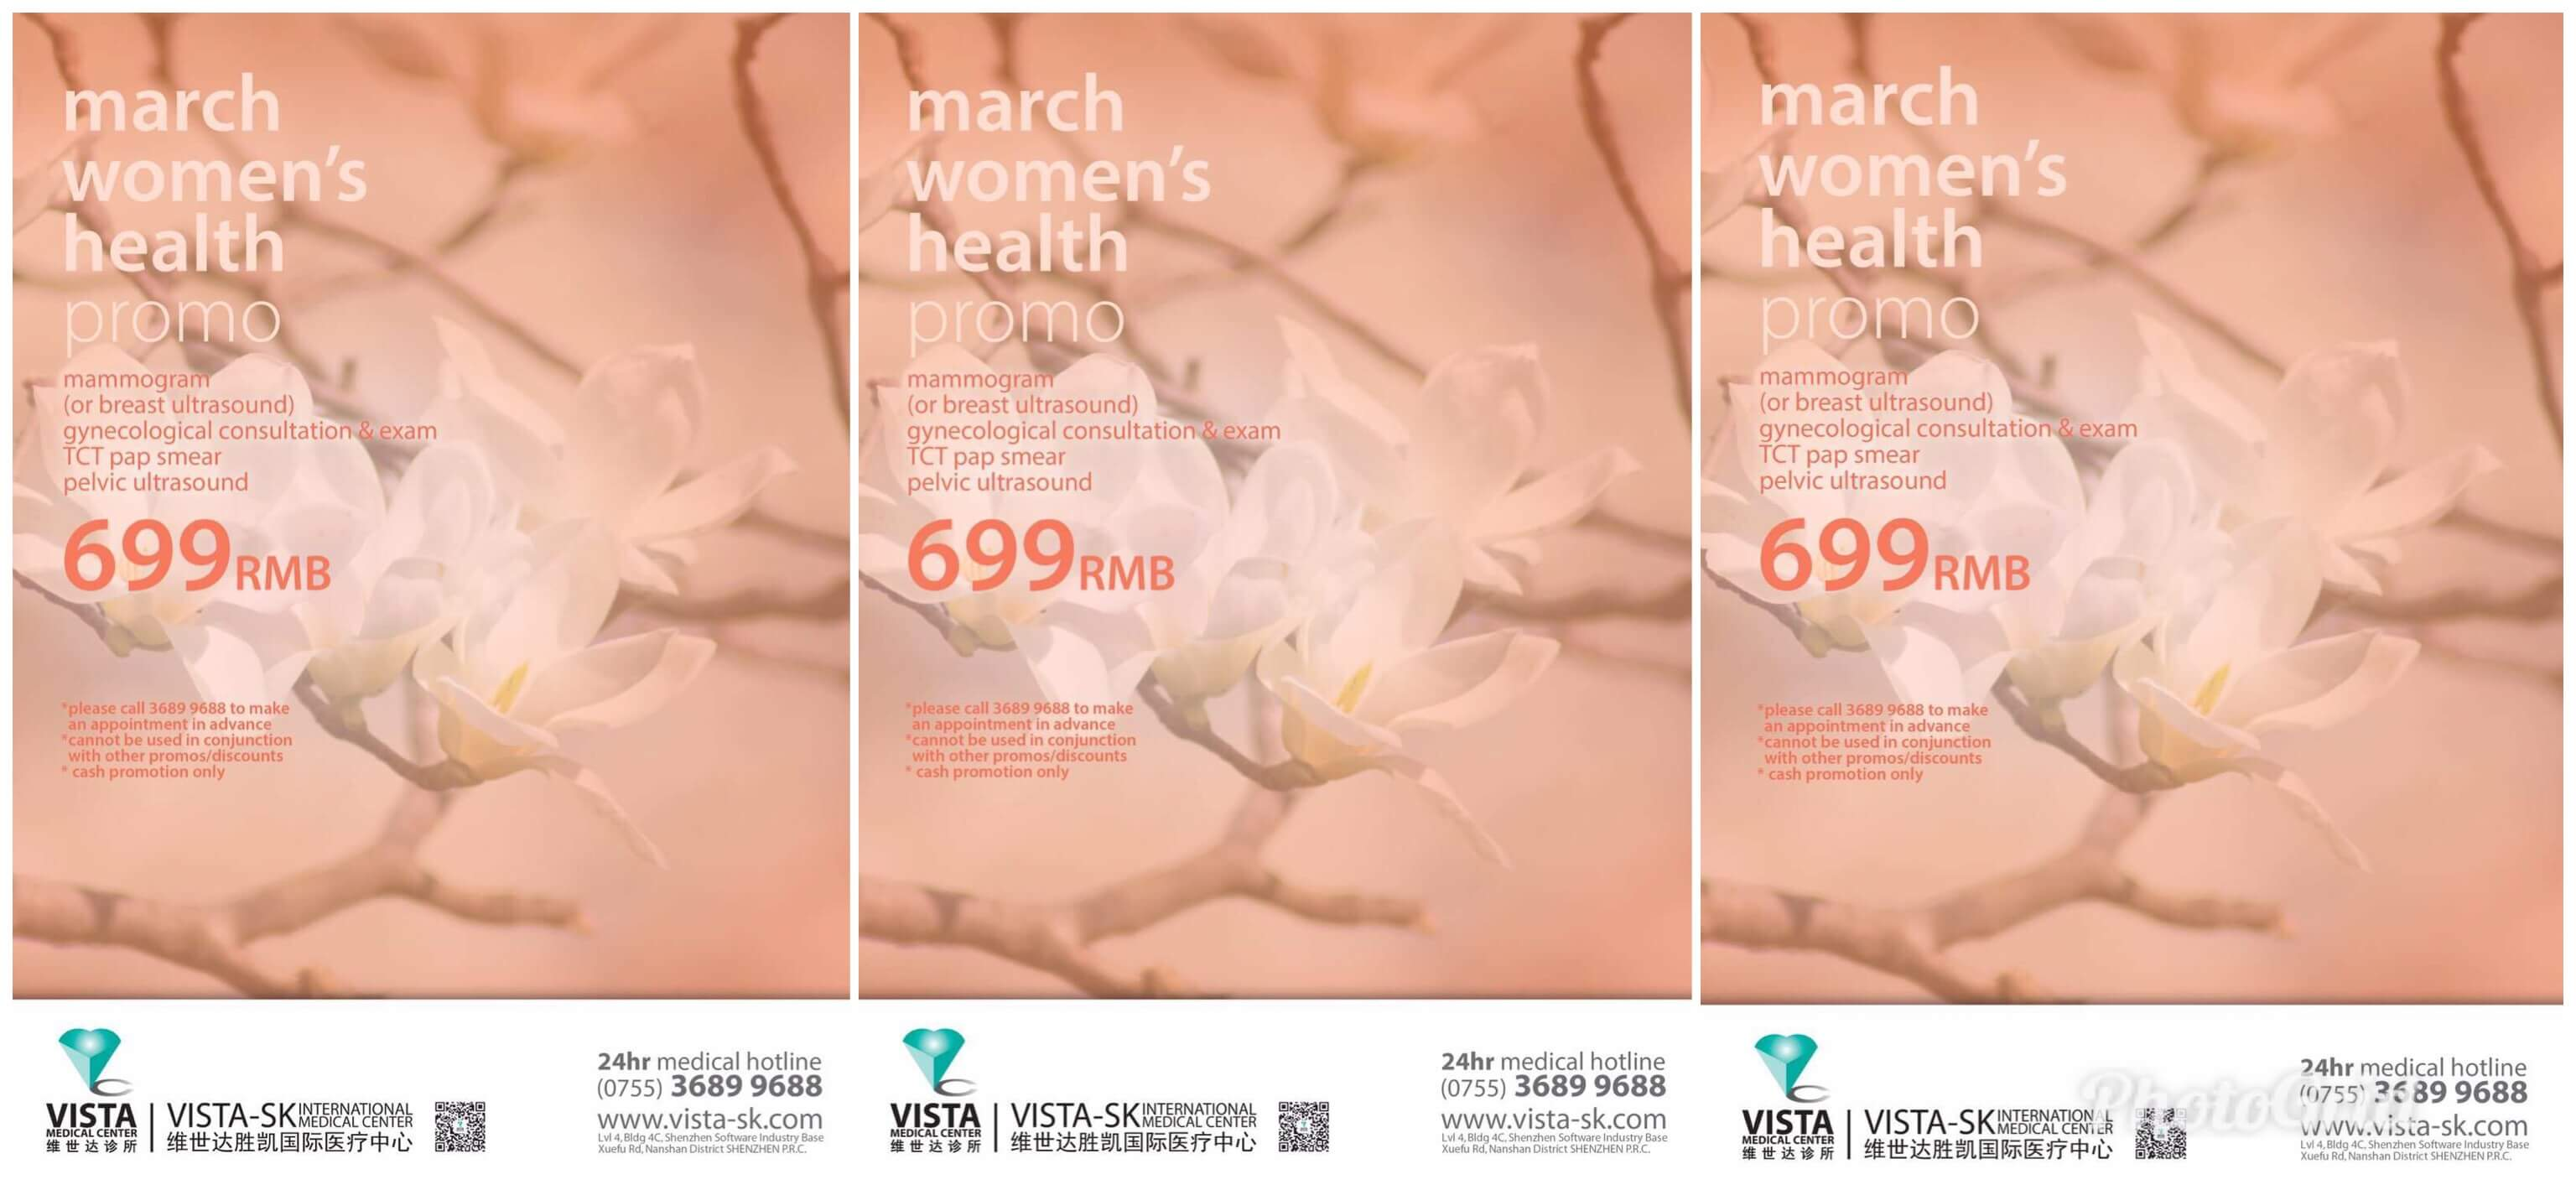 vista-sk march women's health promo